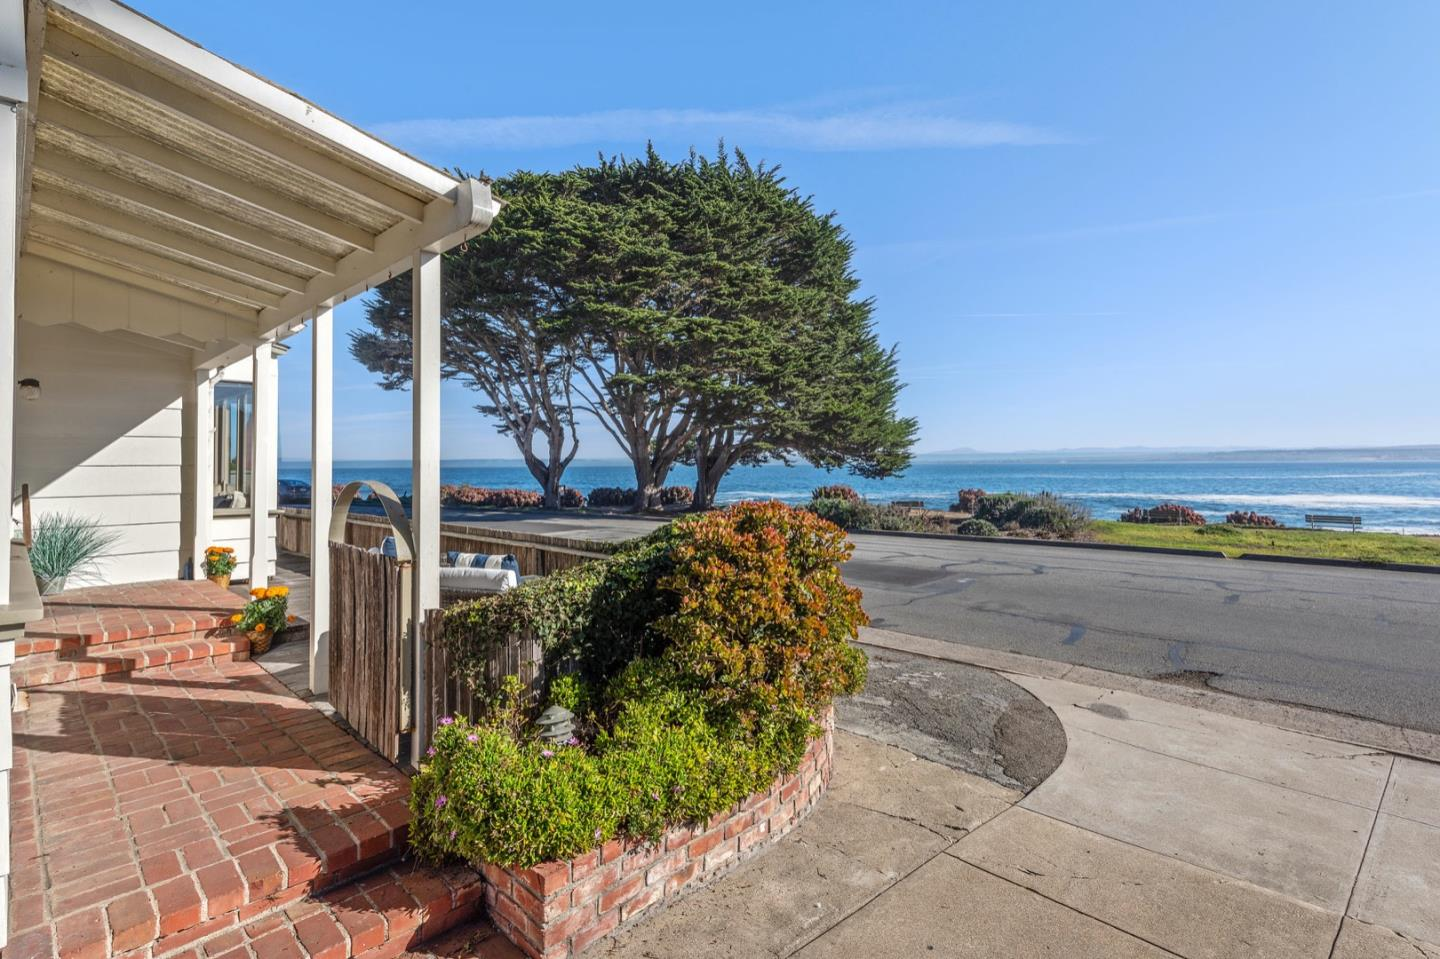 Big panoramic bay views in this ideal stretch of Ocean View Boulevard. Two plus bedroom main house with a one-bedroom detached guest house and two car garage. This is a once in a generation opportunity along the rocky Pacific Grove coast with views that look back towards Lovers' Point, Mount Toro and across the Monterey Bay towards Santa Cruz. You will feel the liveliness of the raw power of the Pacific Ocean and the enjoy direct access to the coastal trail. And while living on the ocean it is just a short stroll to the downtown shops and restaurants, more parks, golf, and the best features of living in the idyllic seaside community of Pacific Grove.